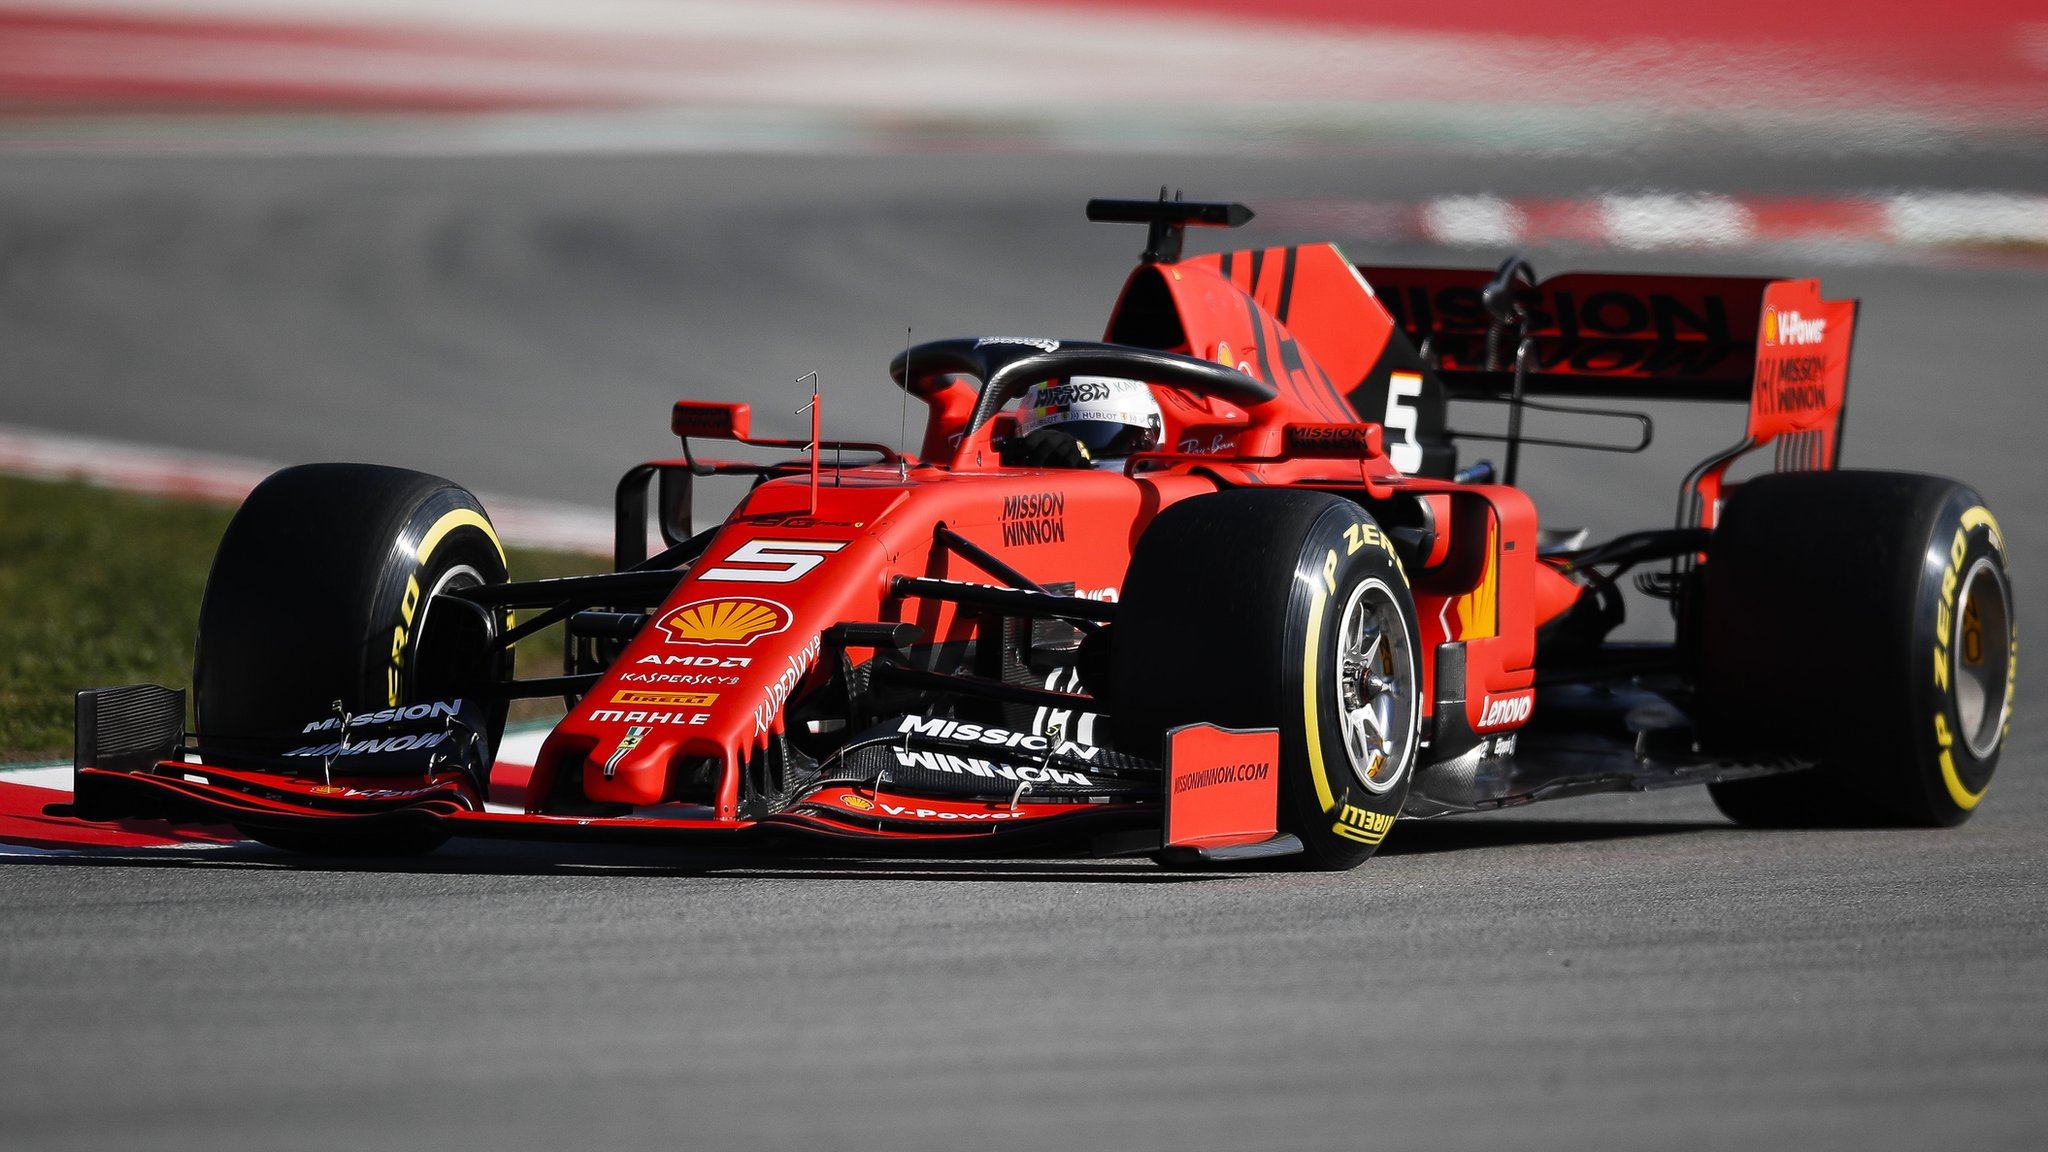 http://c.files.bbci.co.uk/16F75/production/_105696049_vettel_getty.jpg